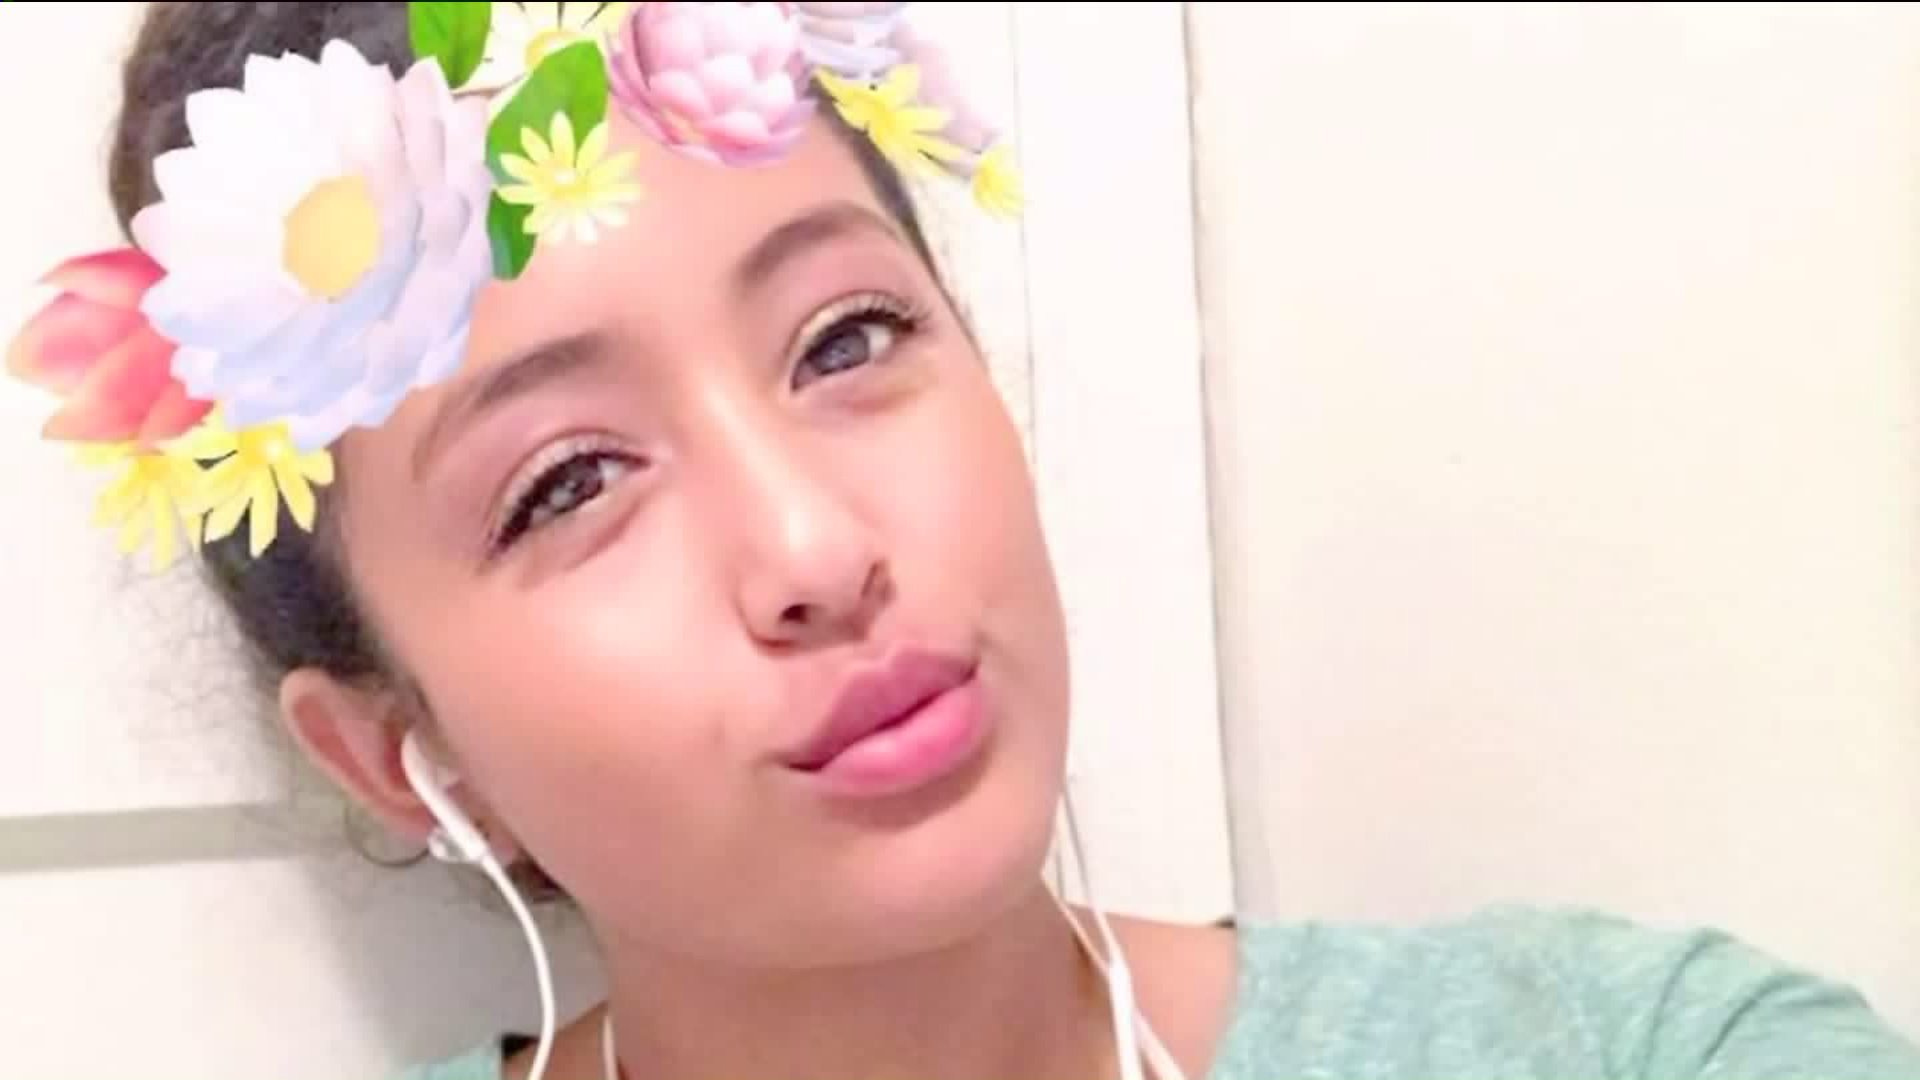 Danah Rojo Rivas, 16, is pictured in a Facebook photo.